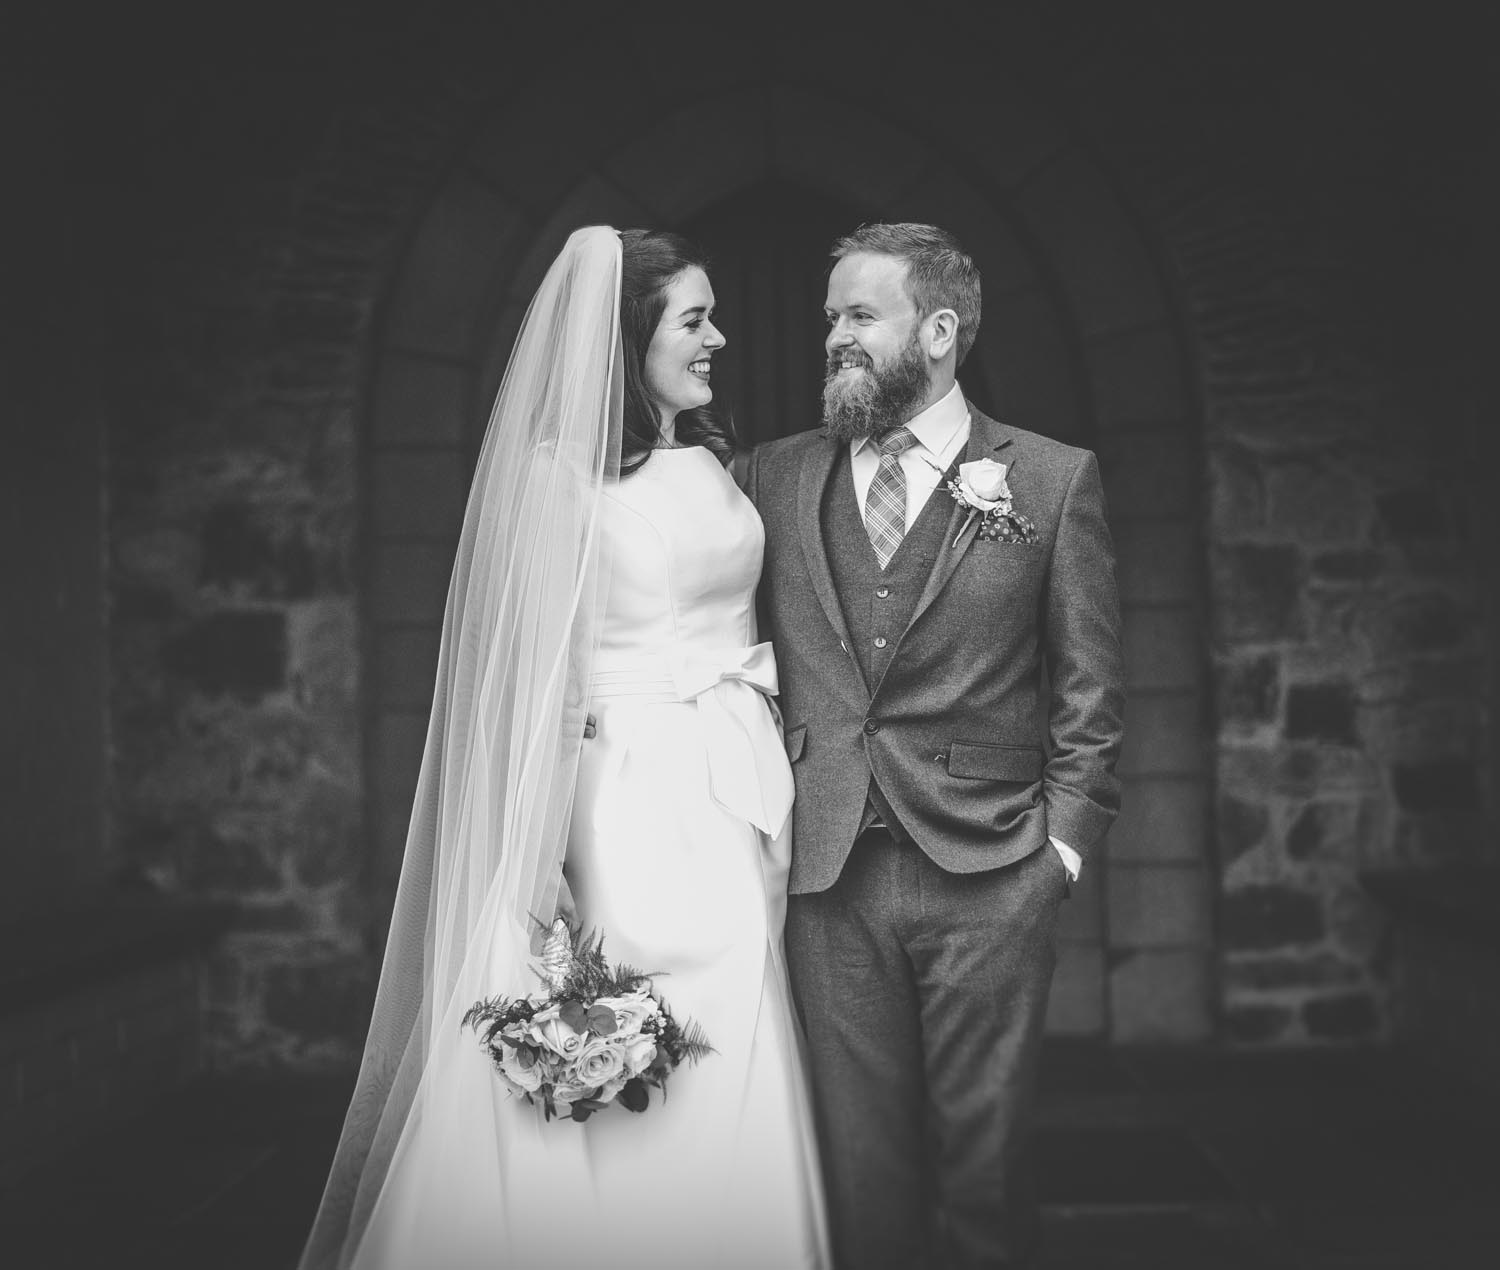 Step House wedding photographer Carlow Borris069.jpg